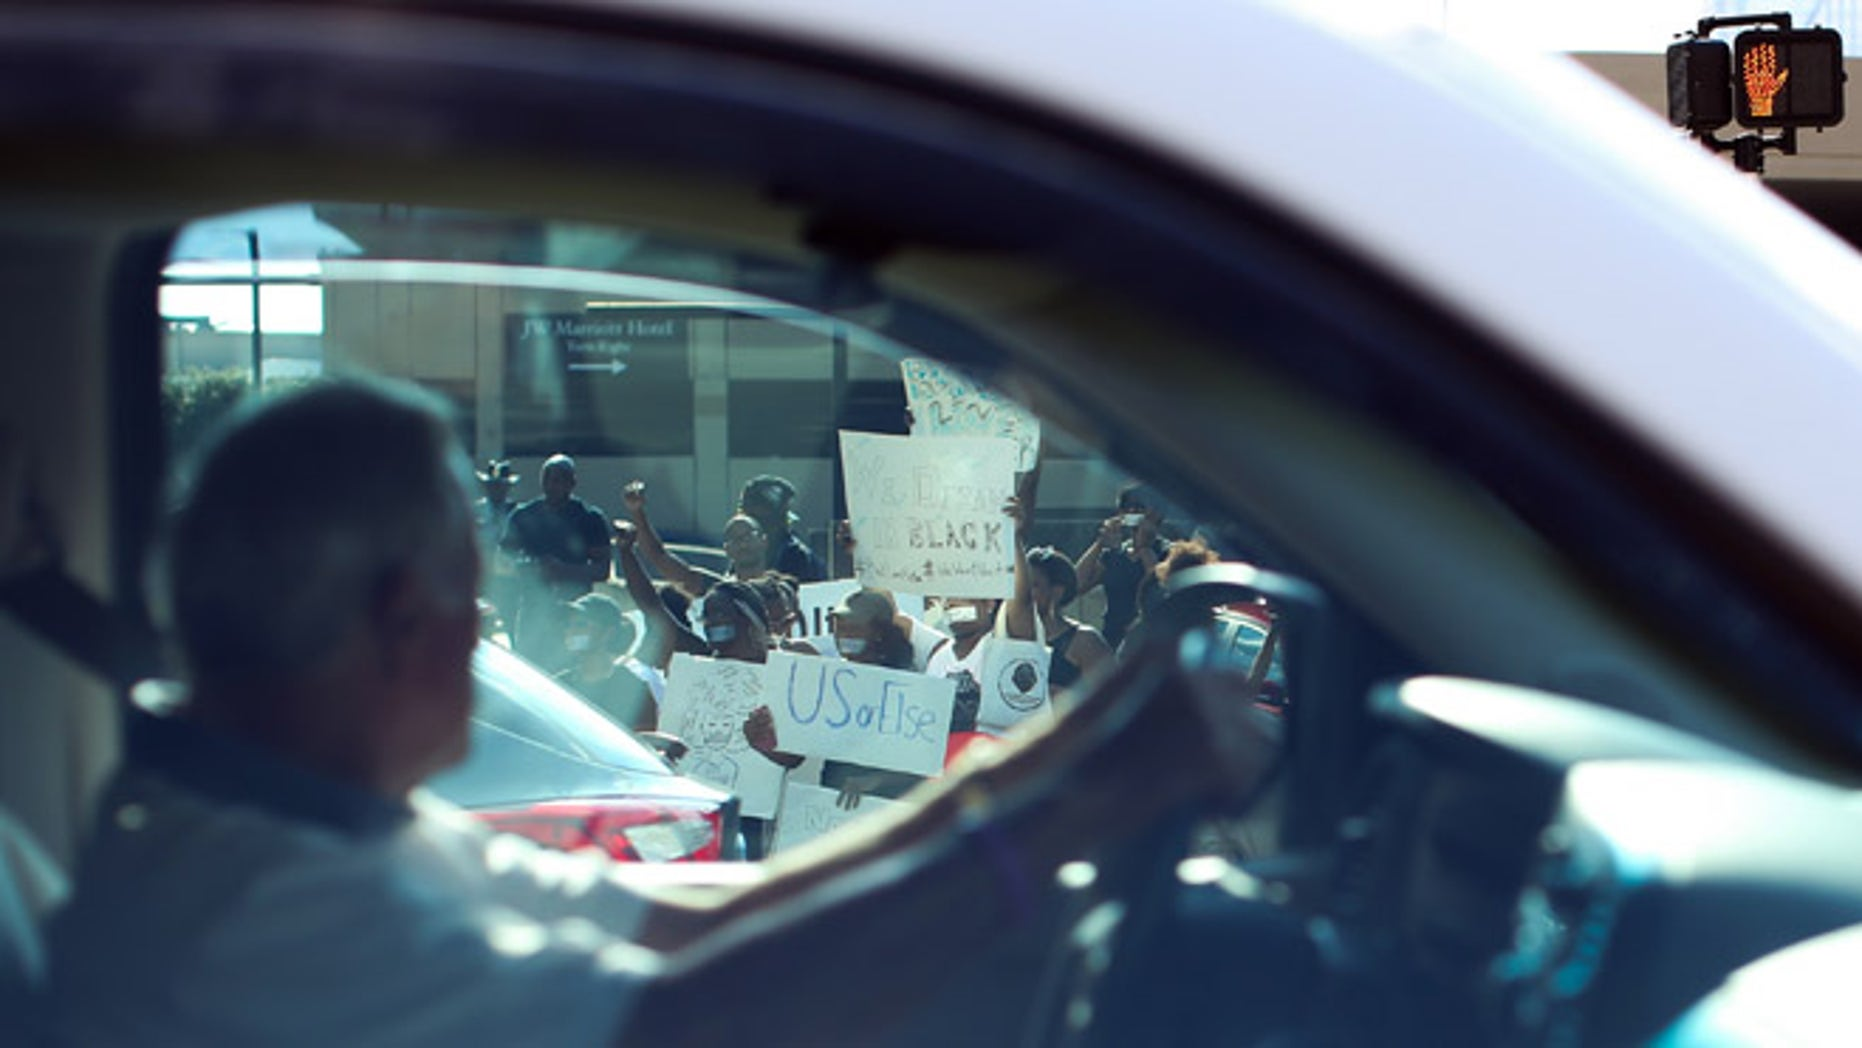 A driver passes demonstrators as they block an entrance to Lenox Square Mall during a Black Lives Matter protest in Atlanta, Saturday, Sept. 24, 2016, in response to the police shooting deaths of Terence Crutcher in Tulsa, Okla. and Keith Lamont Scott in Charlotte, N.C. The Black Lives Matter chapter of Atlanta is boycotting major retailers following the recent police shooting deaths involving black men. (AP Photo/Branden Camp)